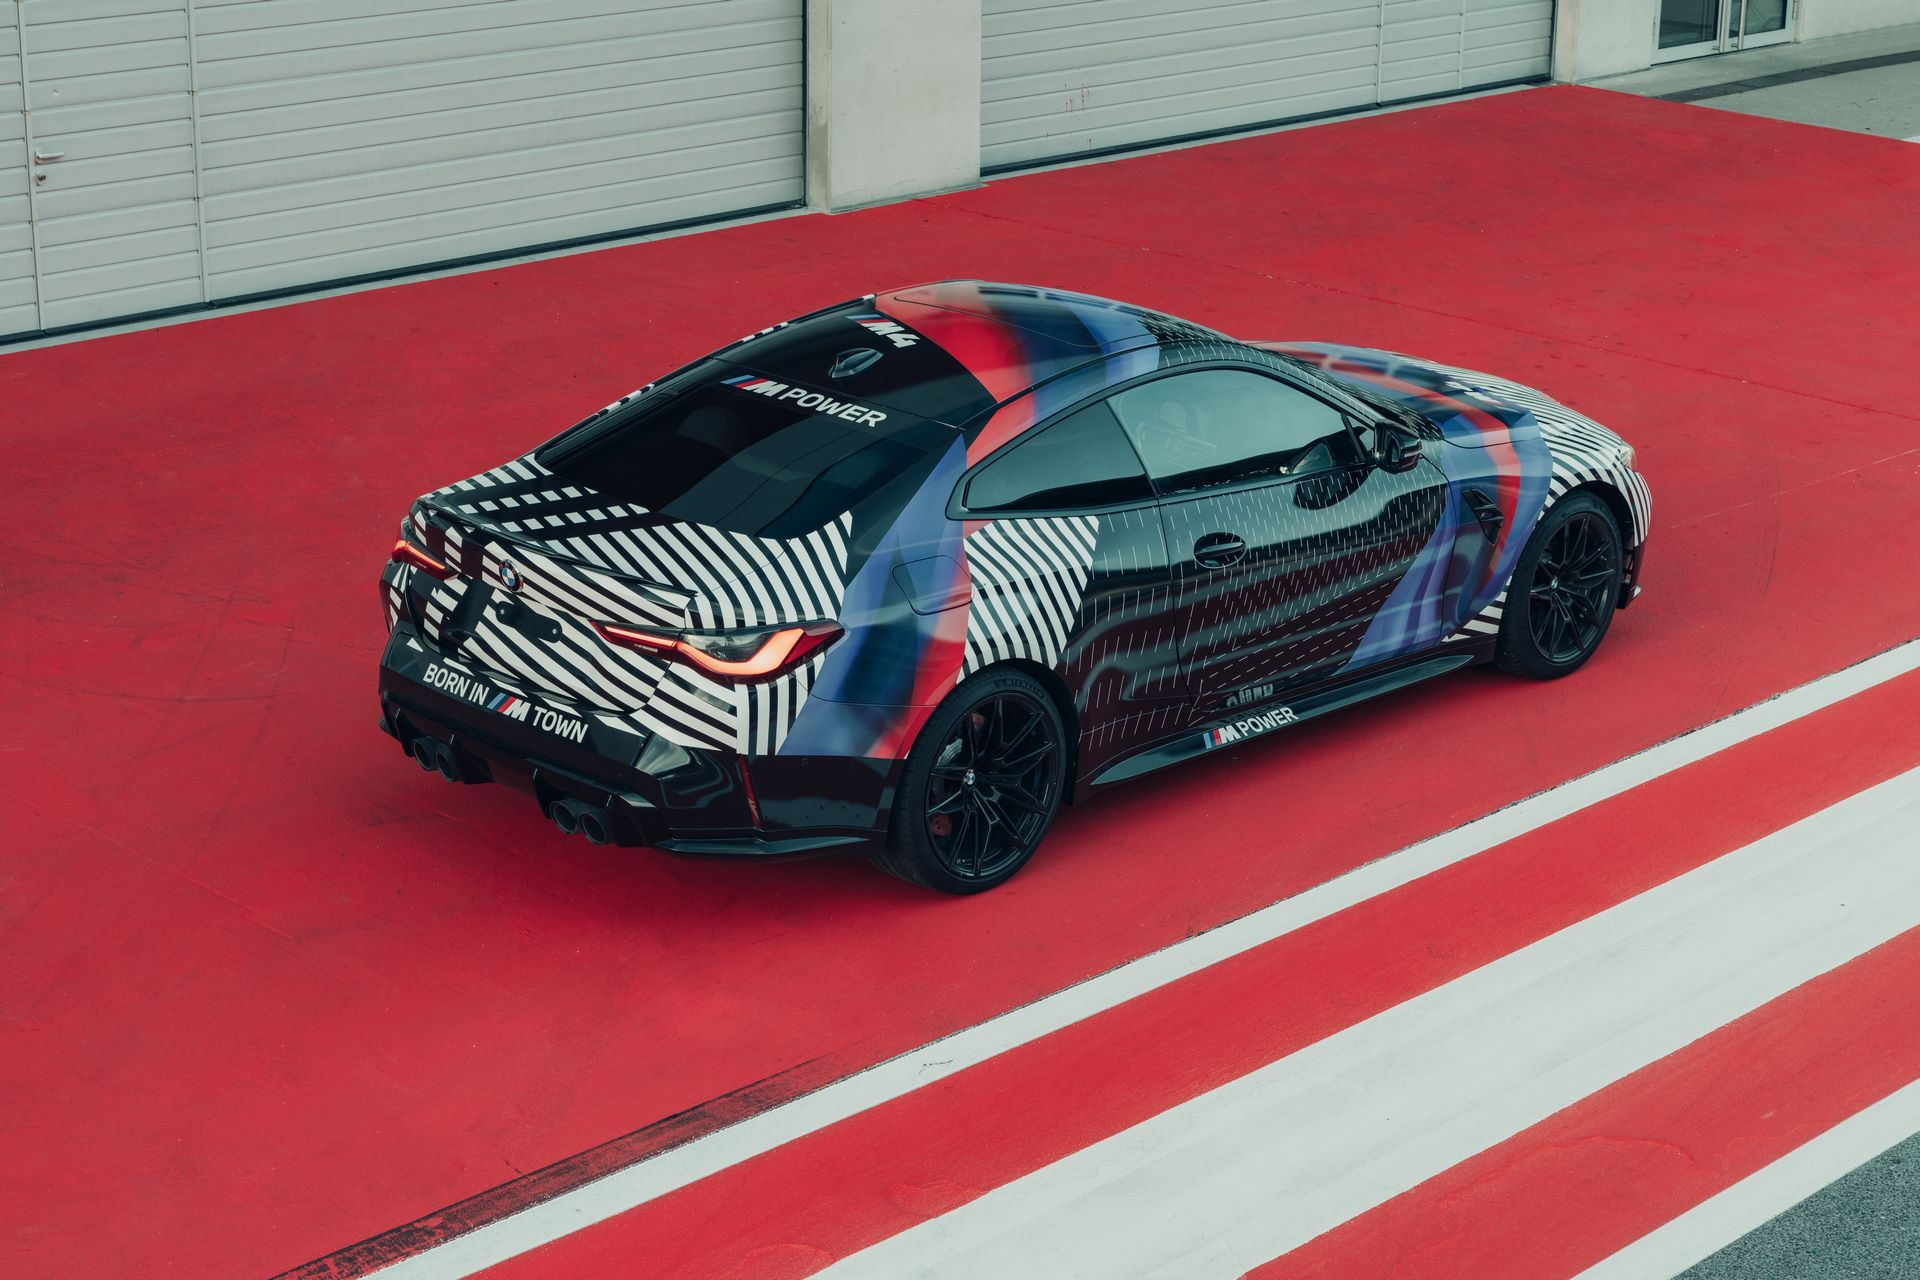 New-BMW-M4-Coupe-and-BMW-M4-GT3-prototypes-10